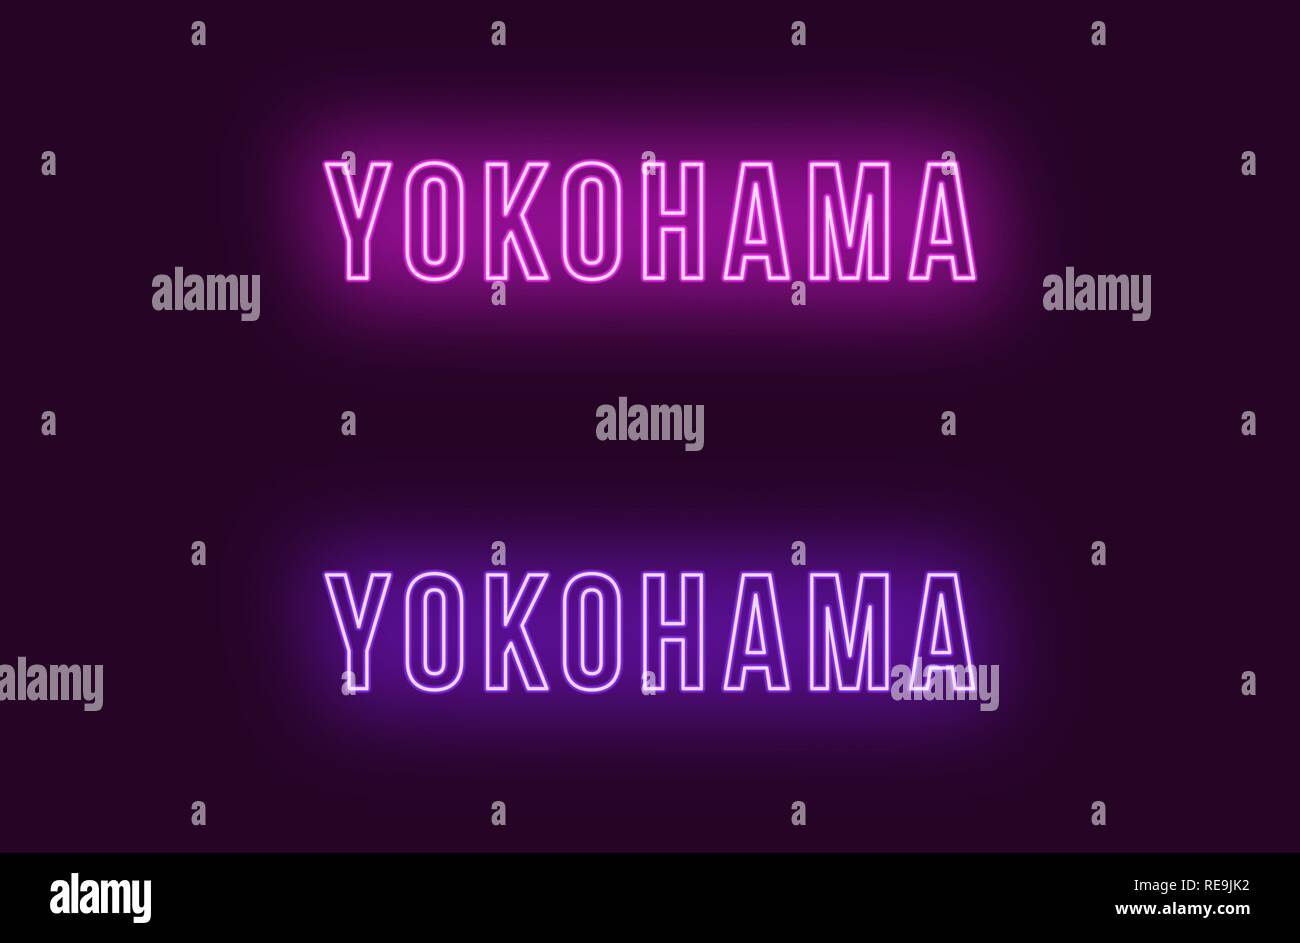 Neon name of Yokohama city in Japan. Vector text of Yokohama, Neon inscription with backlight in Bold style, purple and violet colors. Isolated glowin - Stock Vector